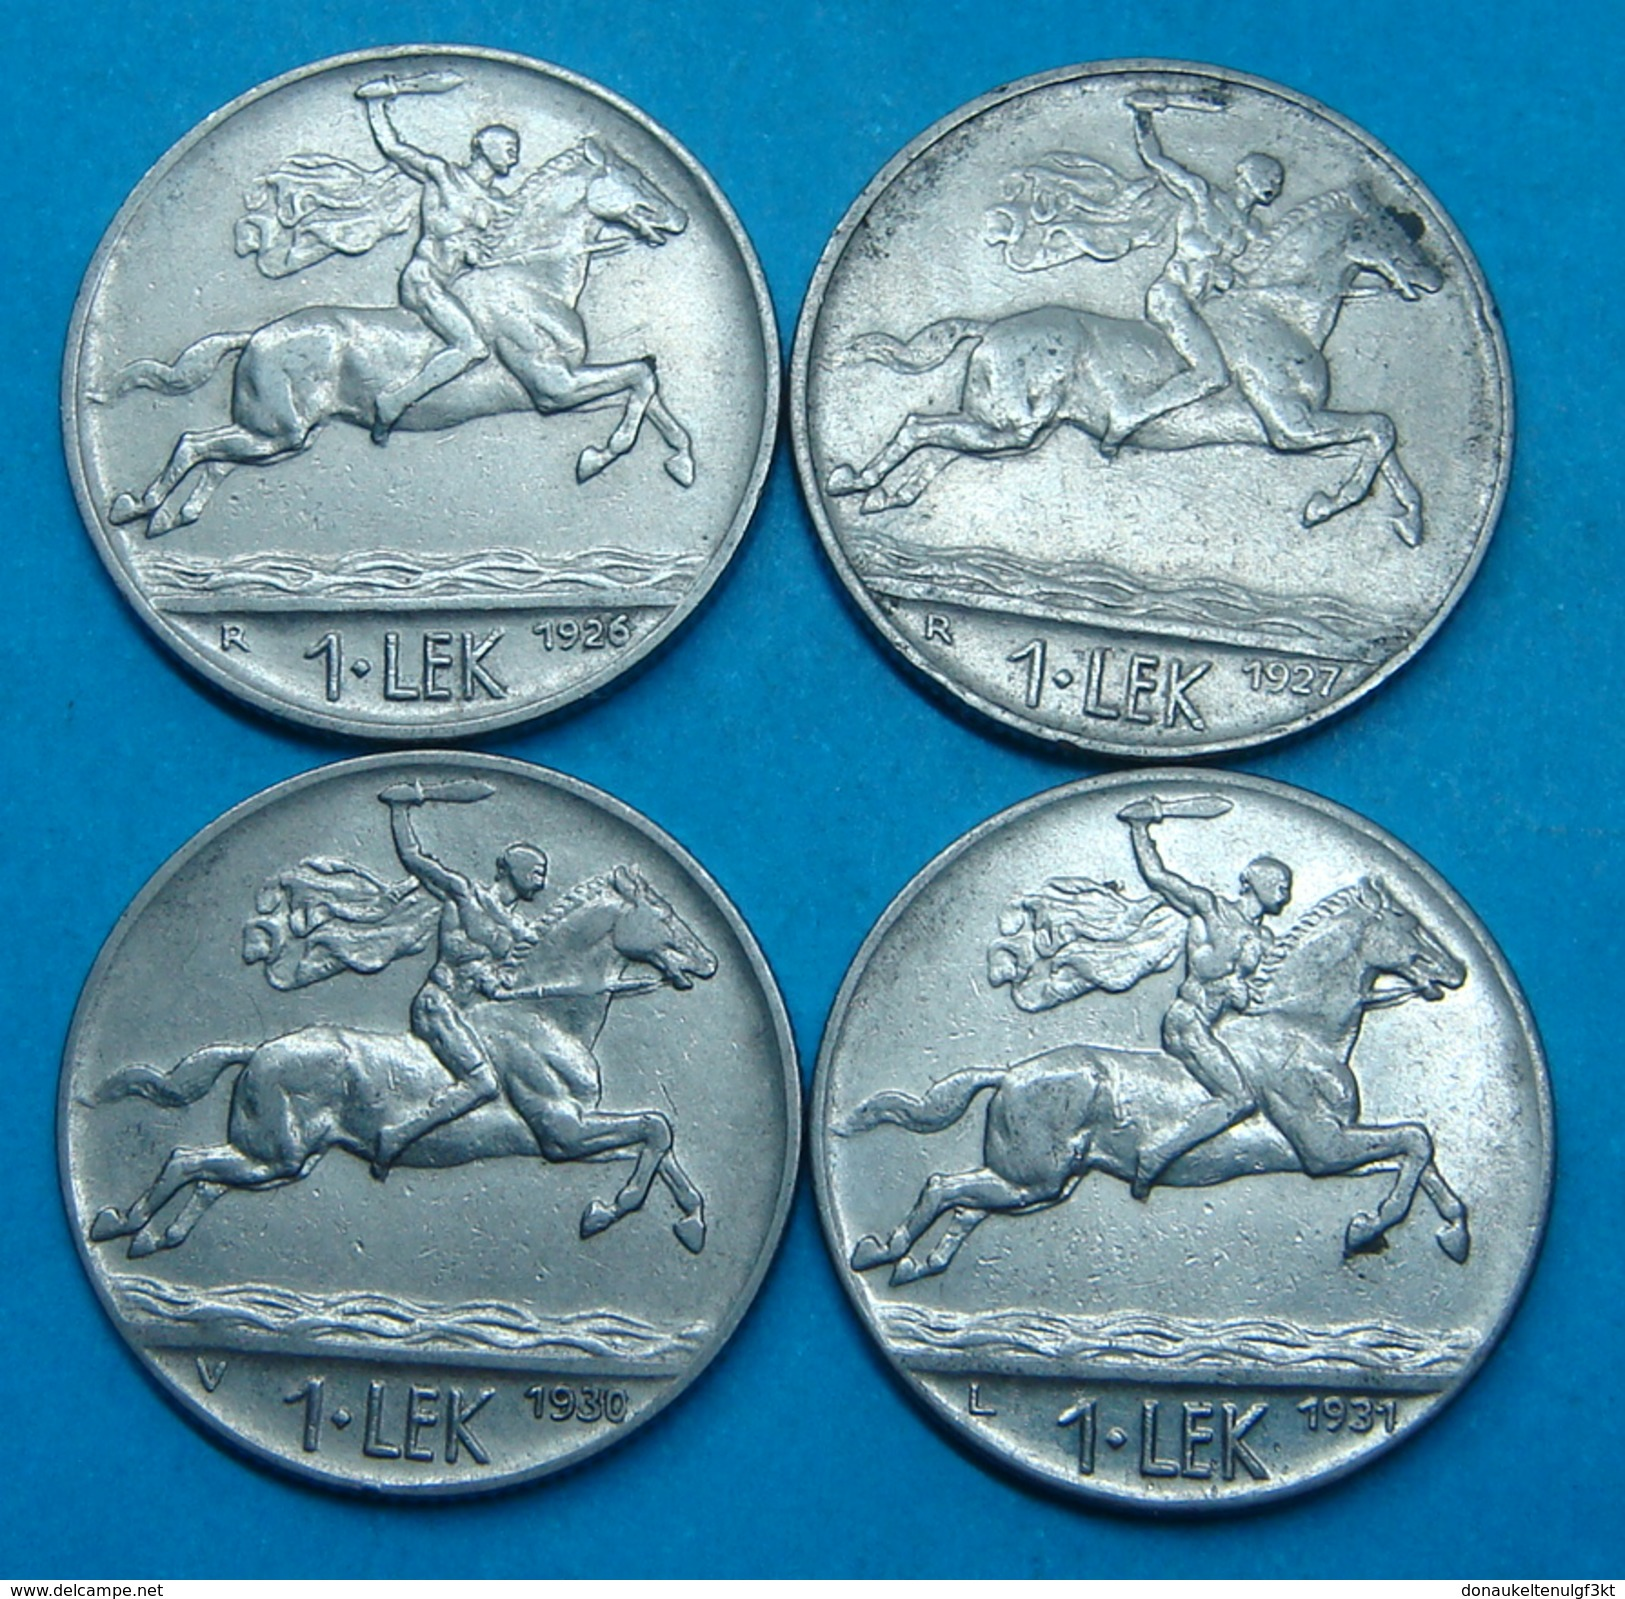 ALBANIA COMPLETE SET OF YEARS 1 LEK, 1927, 1927, 1930, 1931. VERY HARD TO FIND ALL YEARS,RARE - Albania